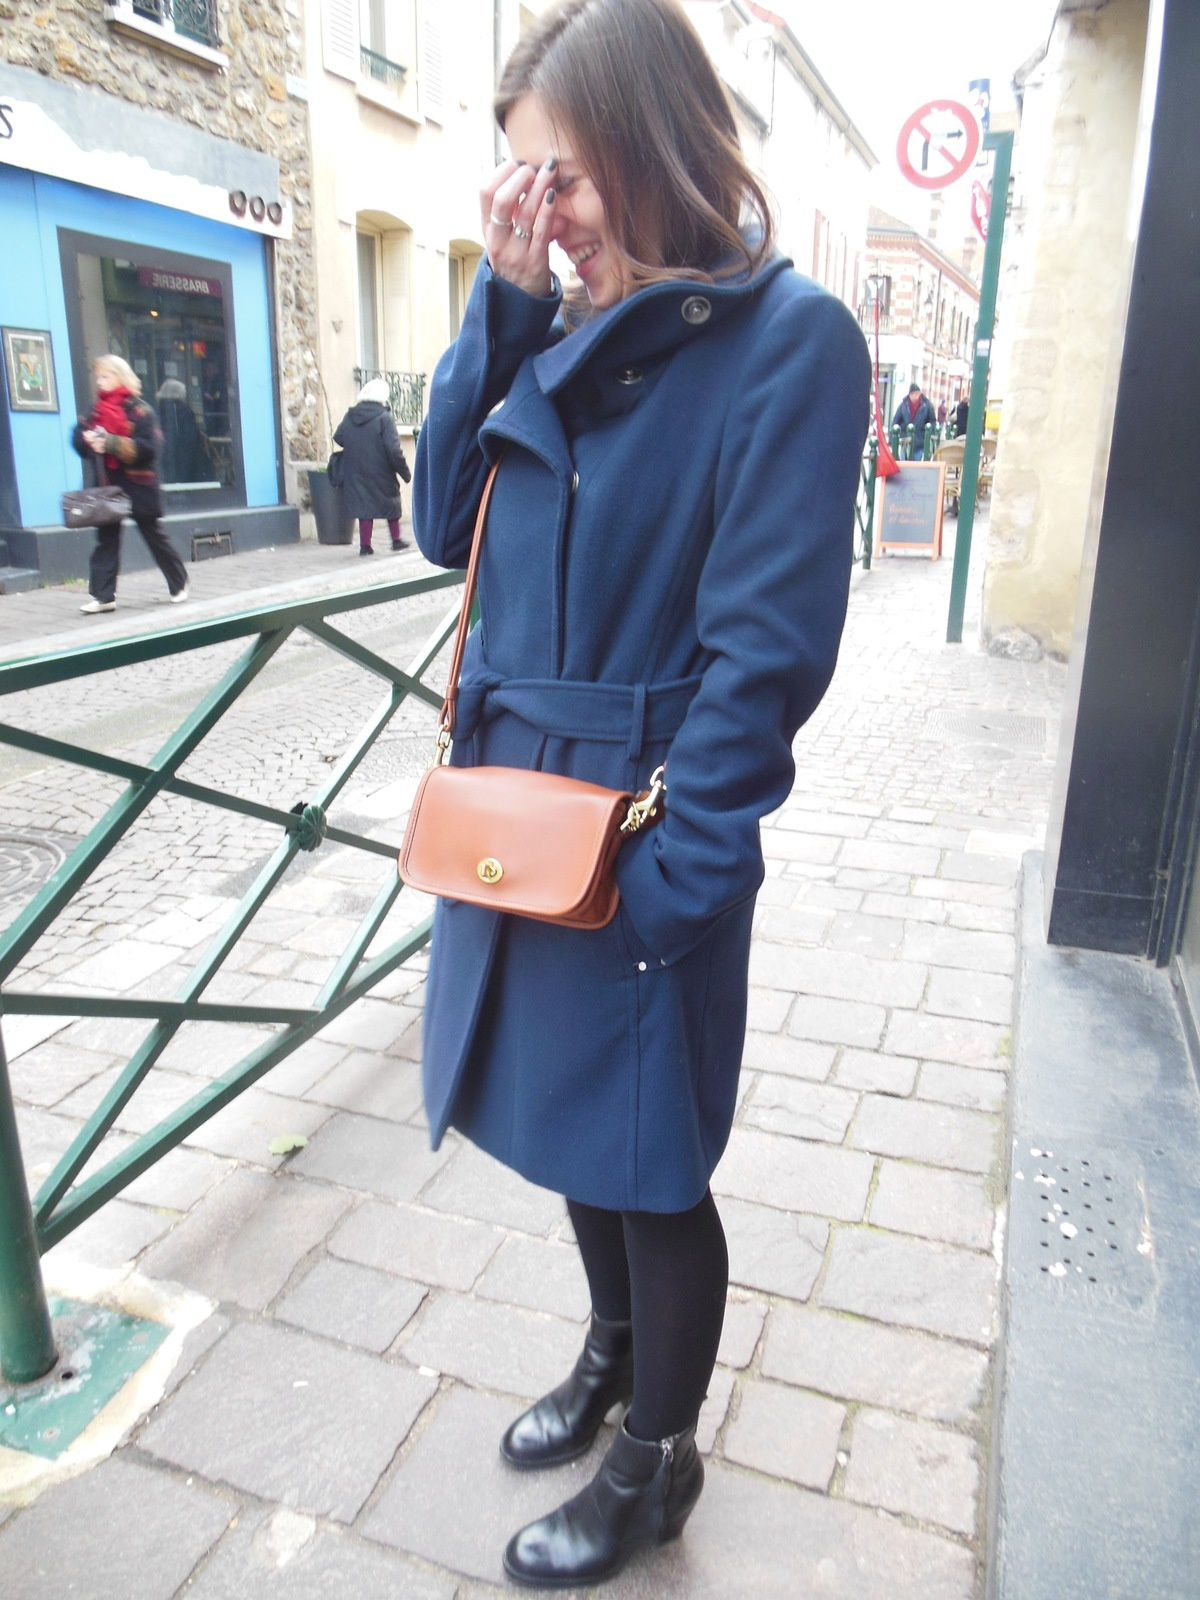 Manteau - Esprit // Top - Kookai // Jupe - Zara // Collant - Well // Pistols boots - Acne // Penny Bag - Coach